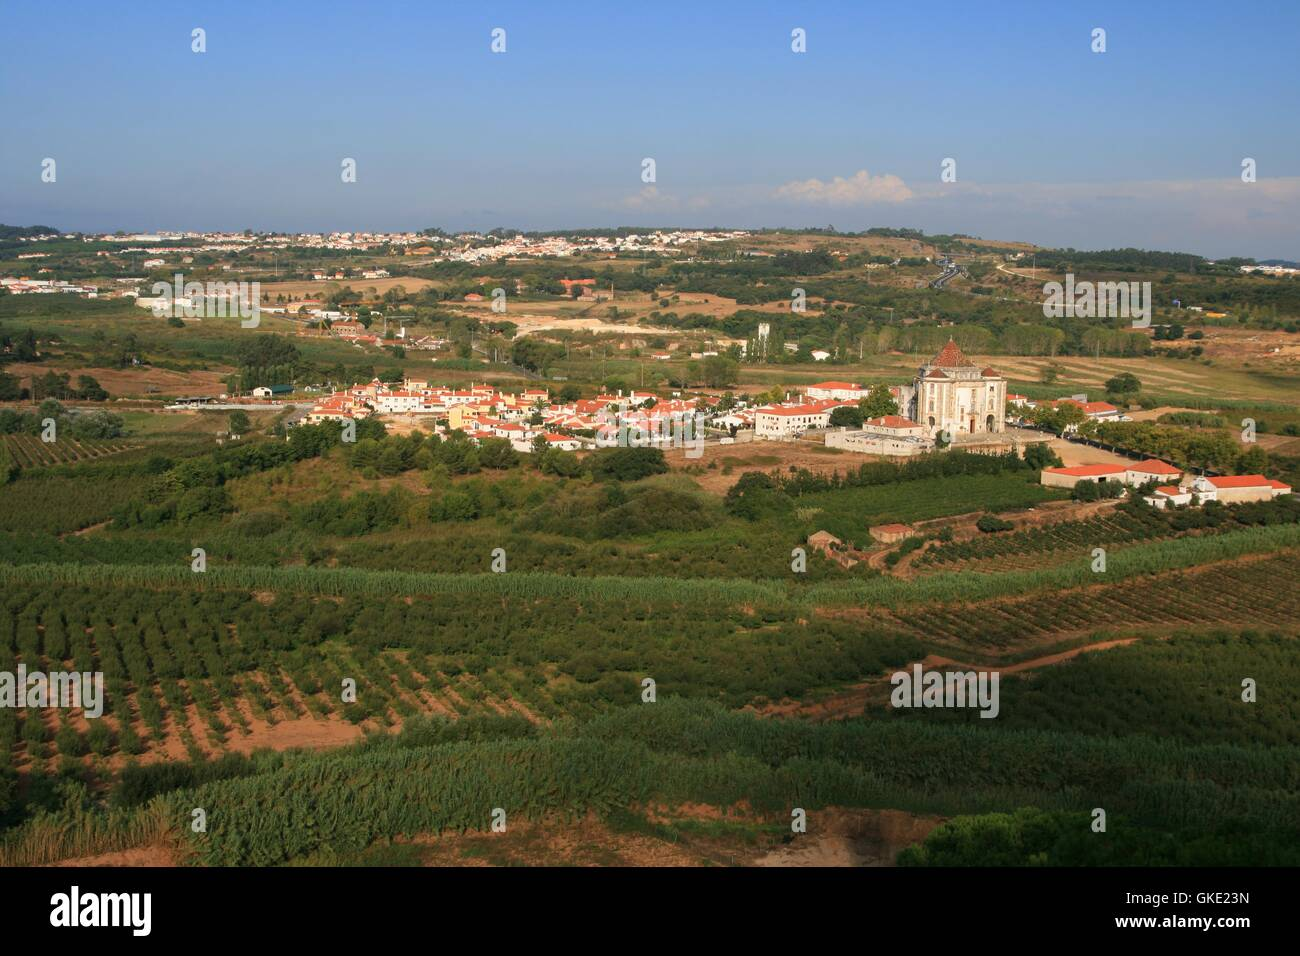 view on village in mountains - Stock Image